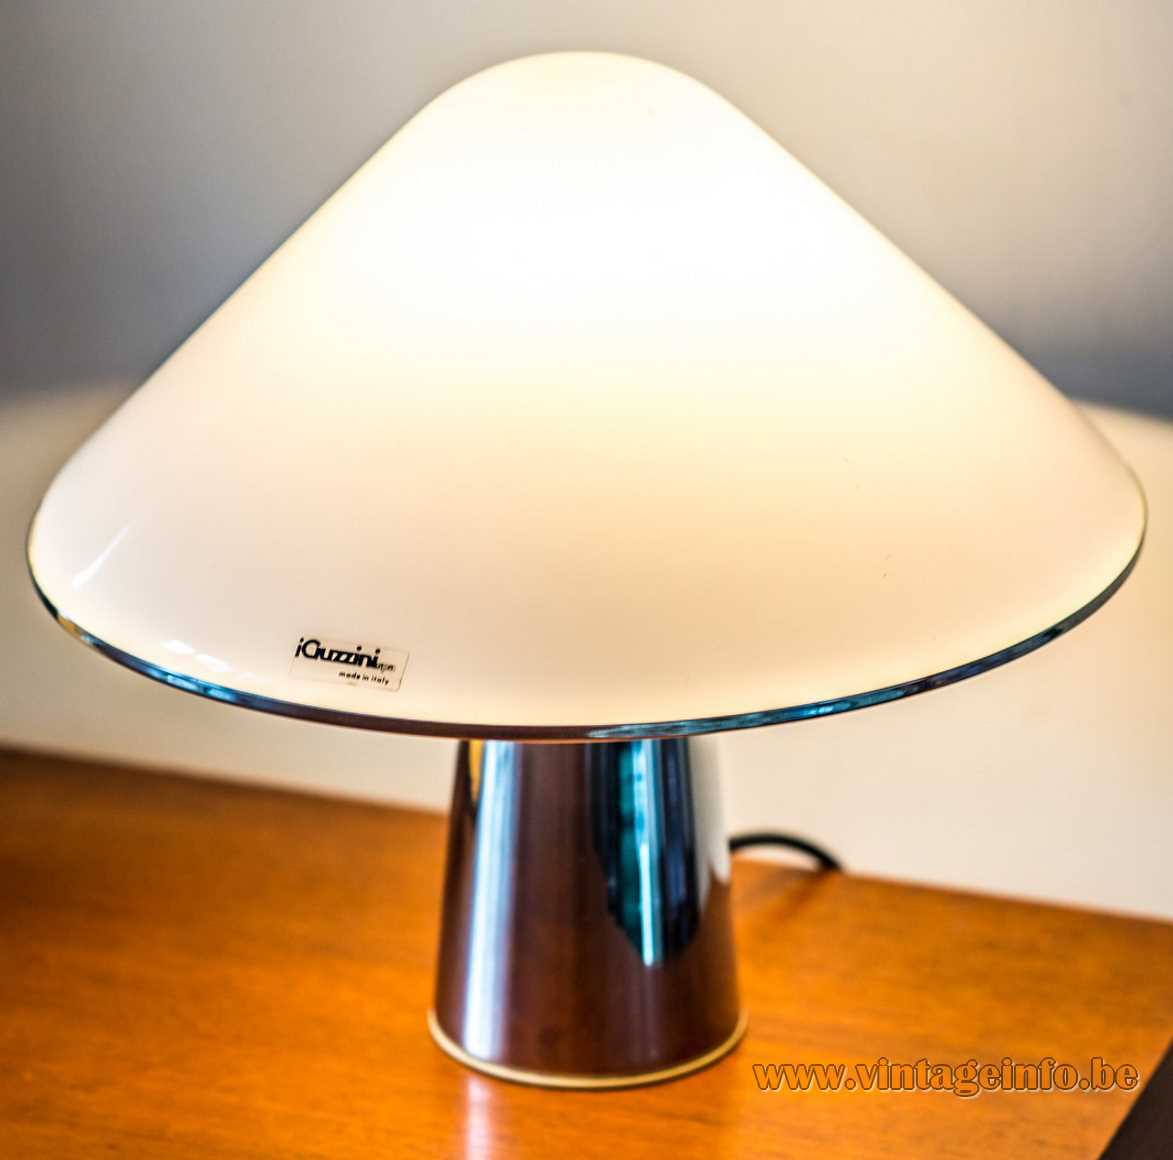 Harvey Guzzini Elpis table lamp round chrome base conical acrylic mushroom lampshade 1960s 1970s iGuzzini Italy